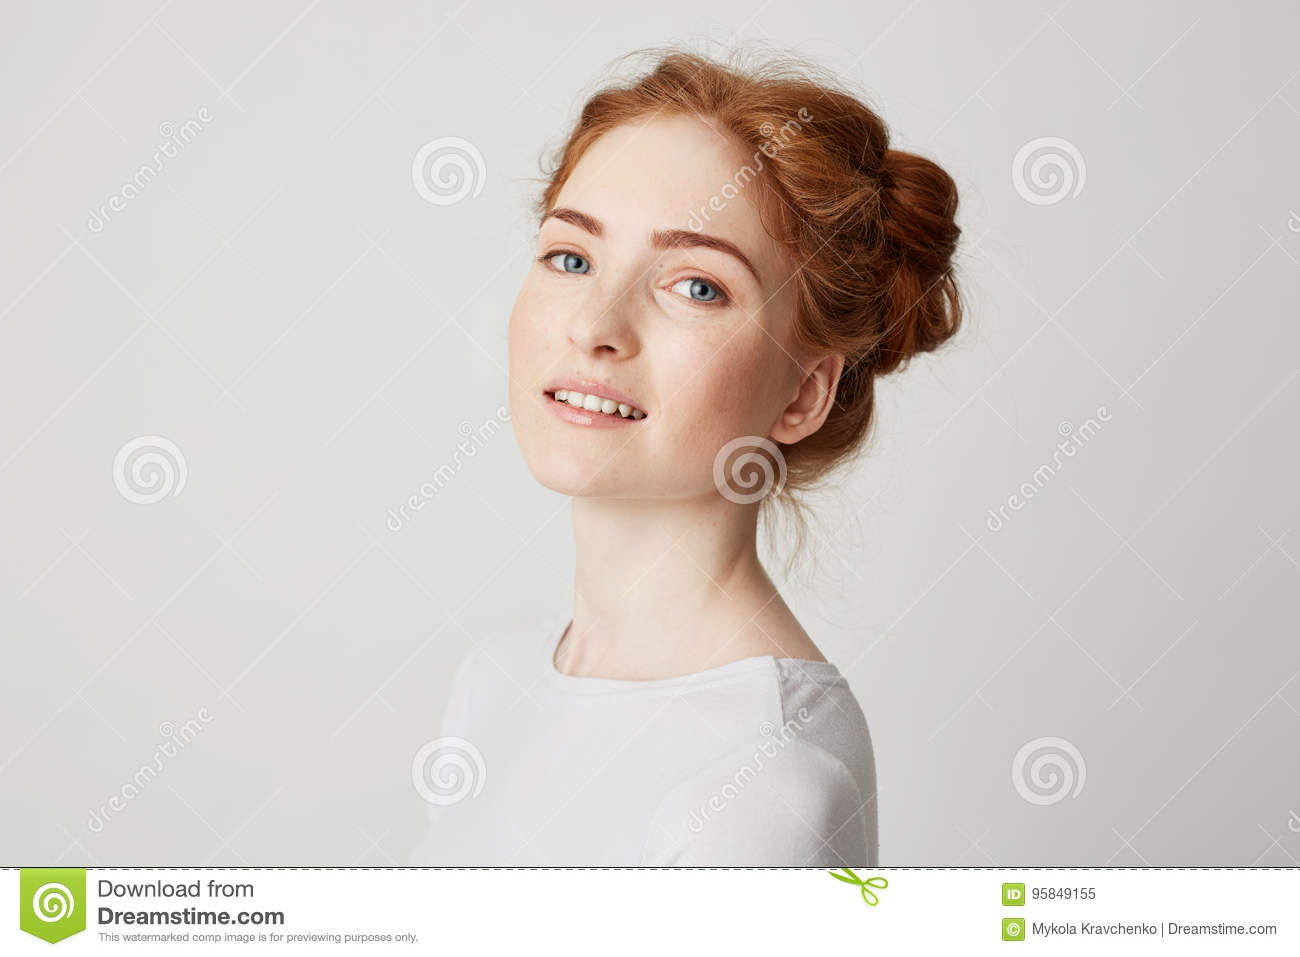 Beautiful redhead girls with freckles congratulate, your